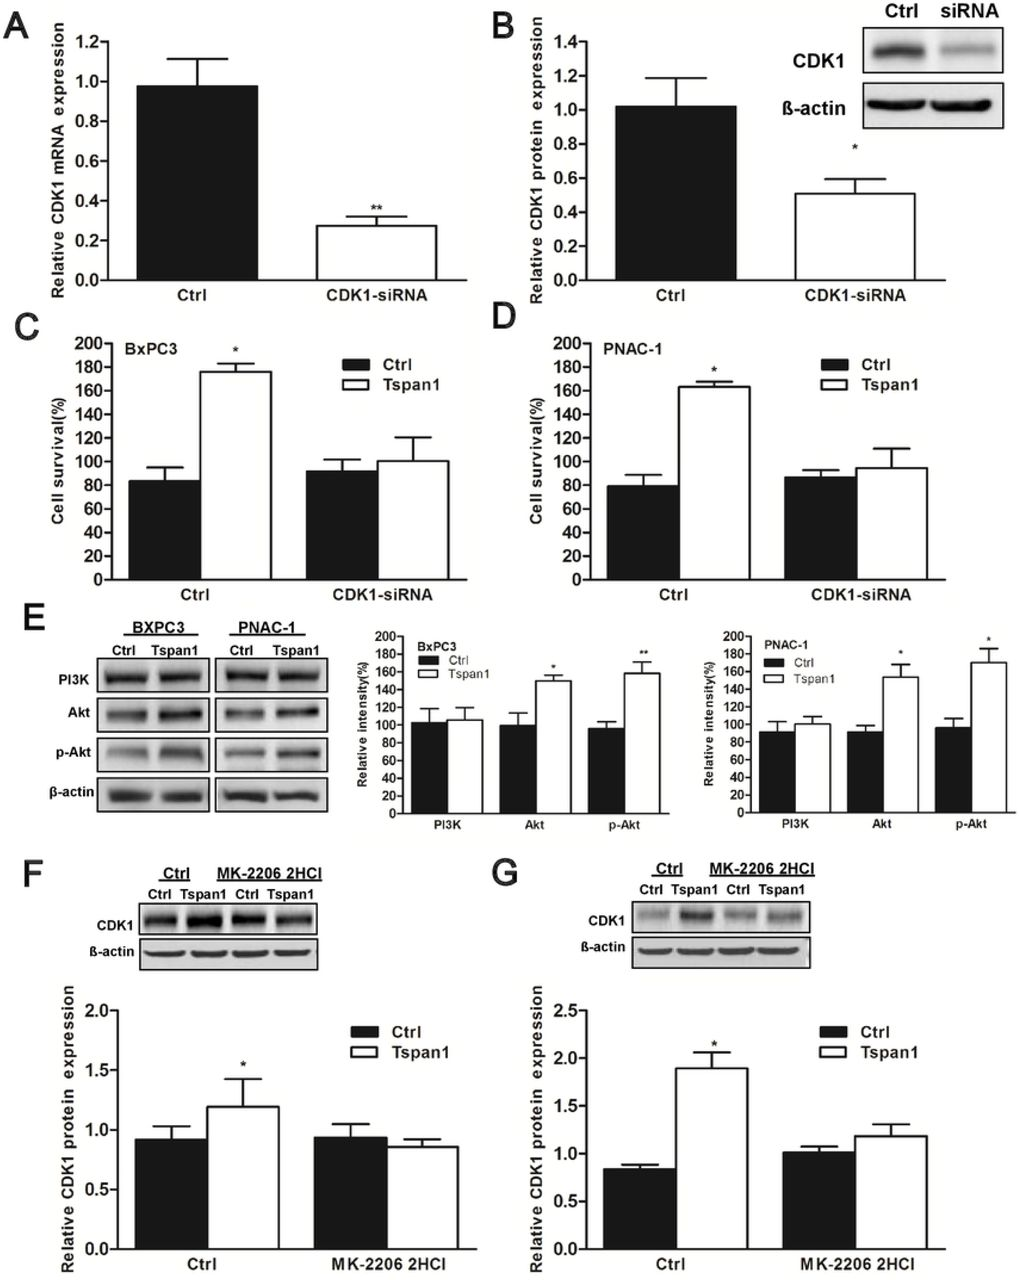 Tspan1 up-regulated BxPC3 and PNAC-1 cells proliferation and CDK1 expression depend on the activation of Akt HEK293 cells were transfected with CDK1 siRNA, the expression levels of CDK1 were detected with qRT-PCR (A) and Western blot (B). BxPC3 and PNAC-1 cells were transfected with pLNCX-TSPAN1-cDNA plasmid (Tspan1). Plasmid pLNCX was transfected into BxPC3 and PNAC-1 cells as control cells (Ctrl). After transfection of CDK1 siRNA, cell proliferation ability and CDK1 expression were observed and analyzed. Alamar blue assay method results of cell survival and proliferation in the Tspan1-overexpressed BxPC3 cells (C) and PNAC-1 cells (D) after CDK1-silencing. CDK1 knock-down significantly abolished the increased cell survival and proliferation ability induced by Tspan1 overexpression. E. The expression levels of PI3K, Akt and p-Akt in the Tspan1-overexpressed BxPC3 cells and PNAC-1 cells were measured by western blotting. It demonstrated that Tspan1 overexpression could promote the expression and phosphorylation of Akt. Then MK-2206 2HCl, a specific inhibitor of Akt were used to suppress the Akt activation, then the expression of CDK1 was assessed in the Tspan1-overexpressed BxPC3 cells (F) and PNAC-1 cells (G). It showed that suppression of Akt significantly attenuated the increased CDK1 expression induced by Tspan1 over-expression. * P